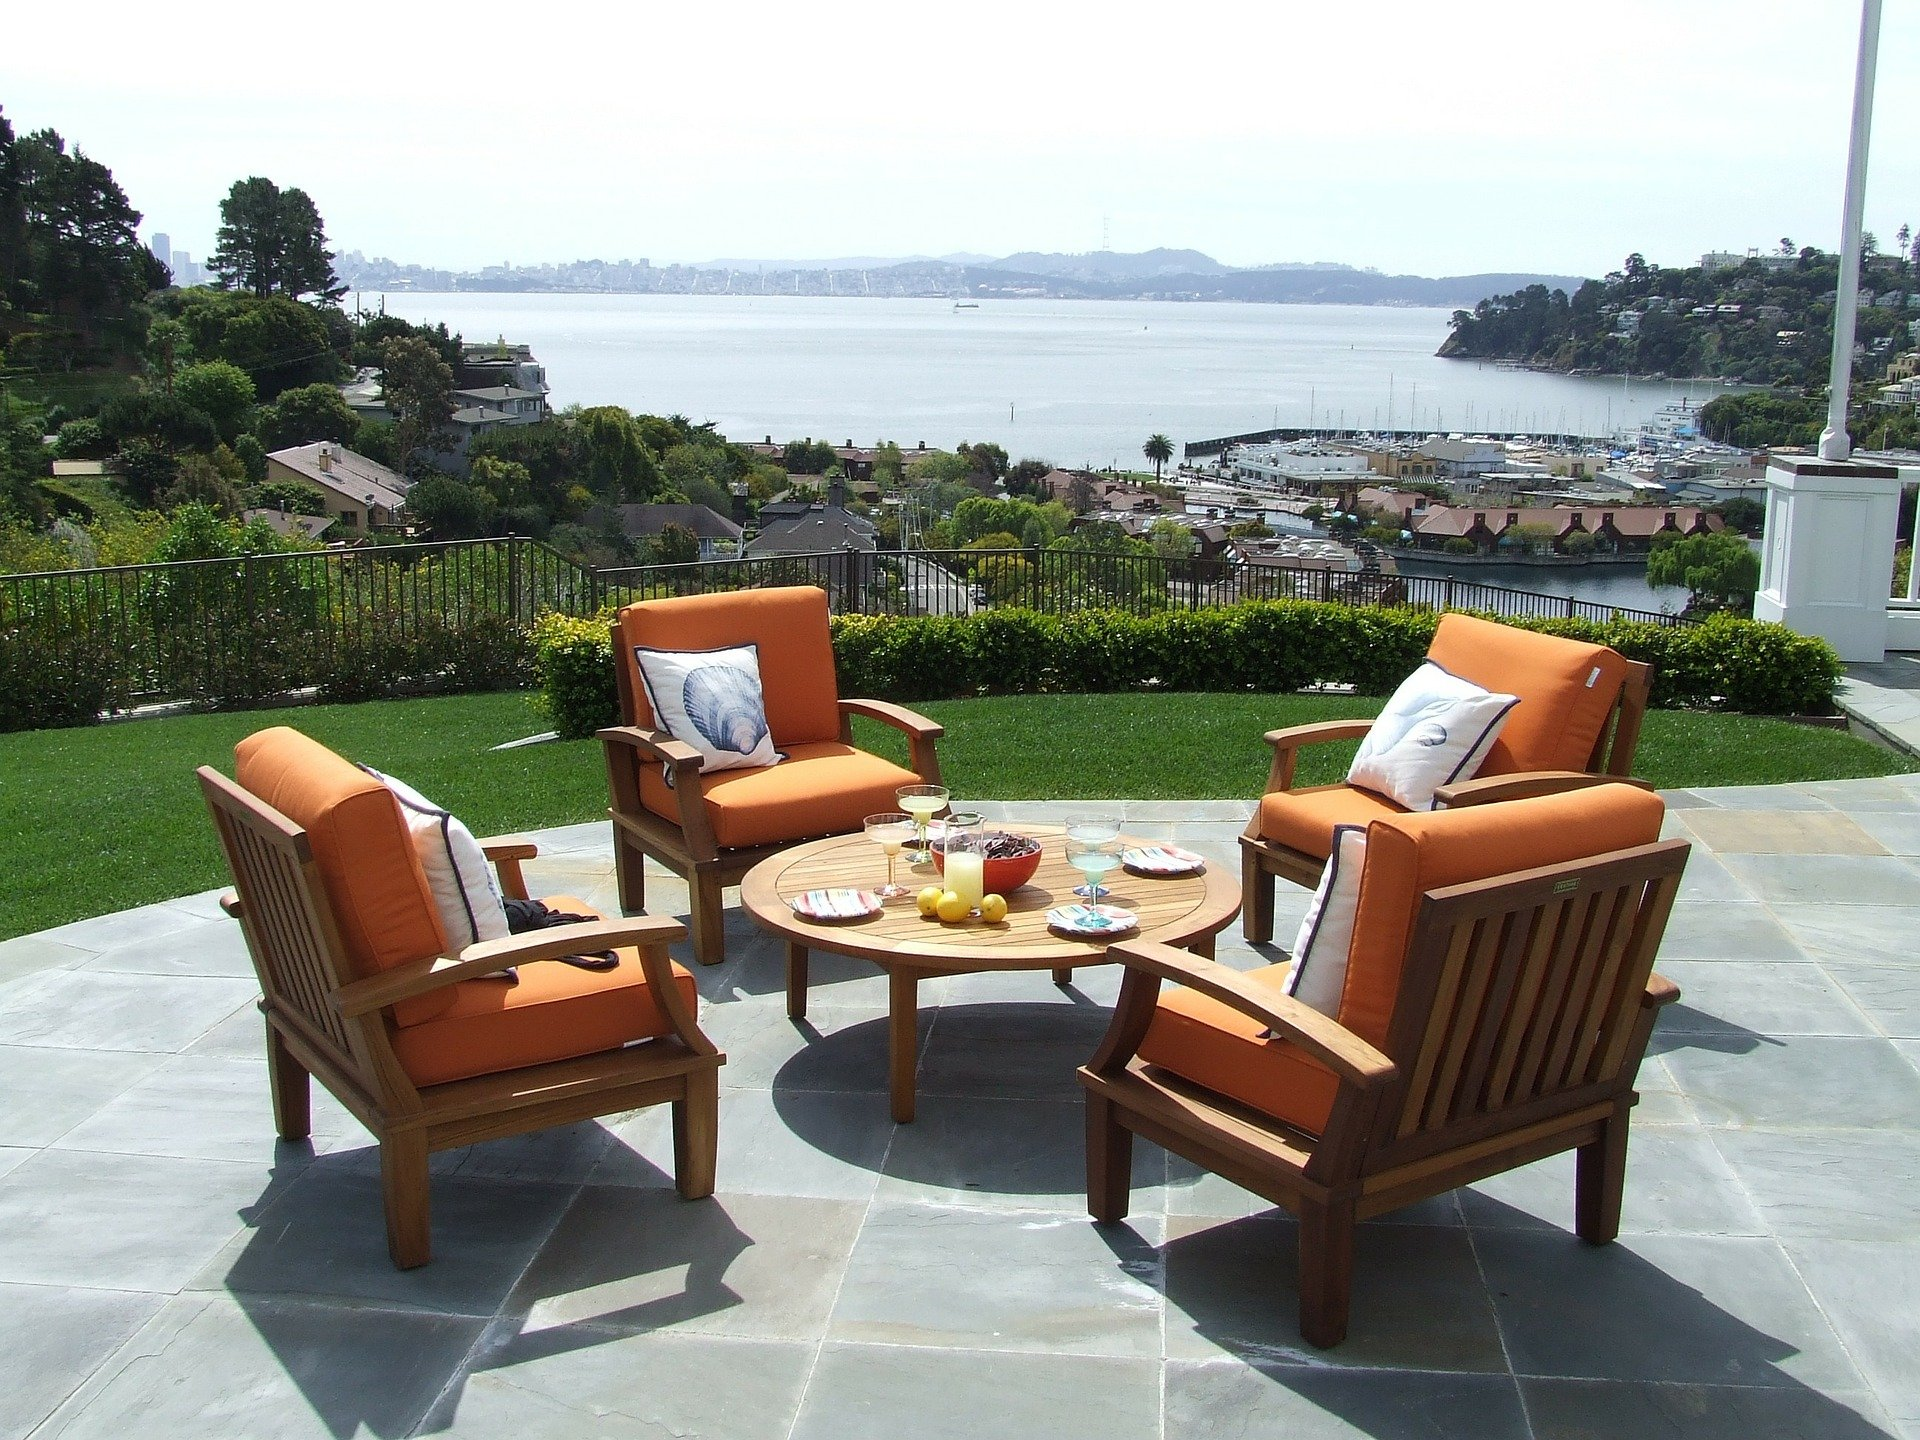 Consider upgrading your patio furniture